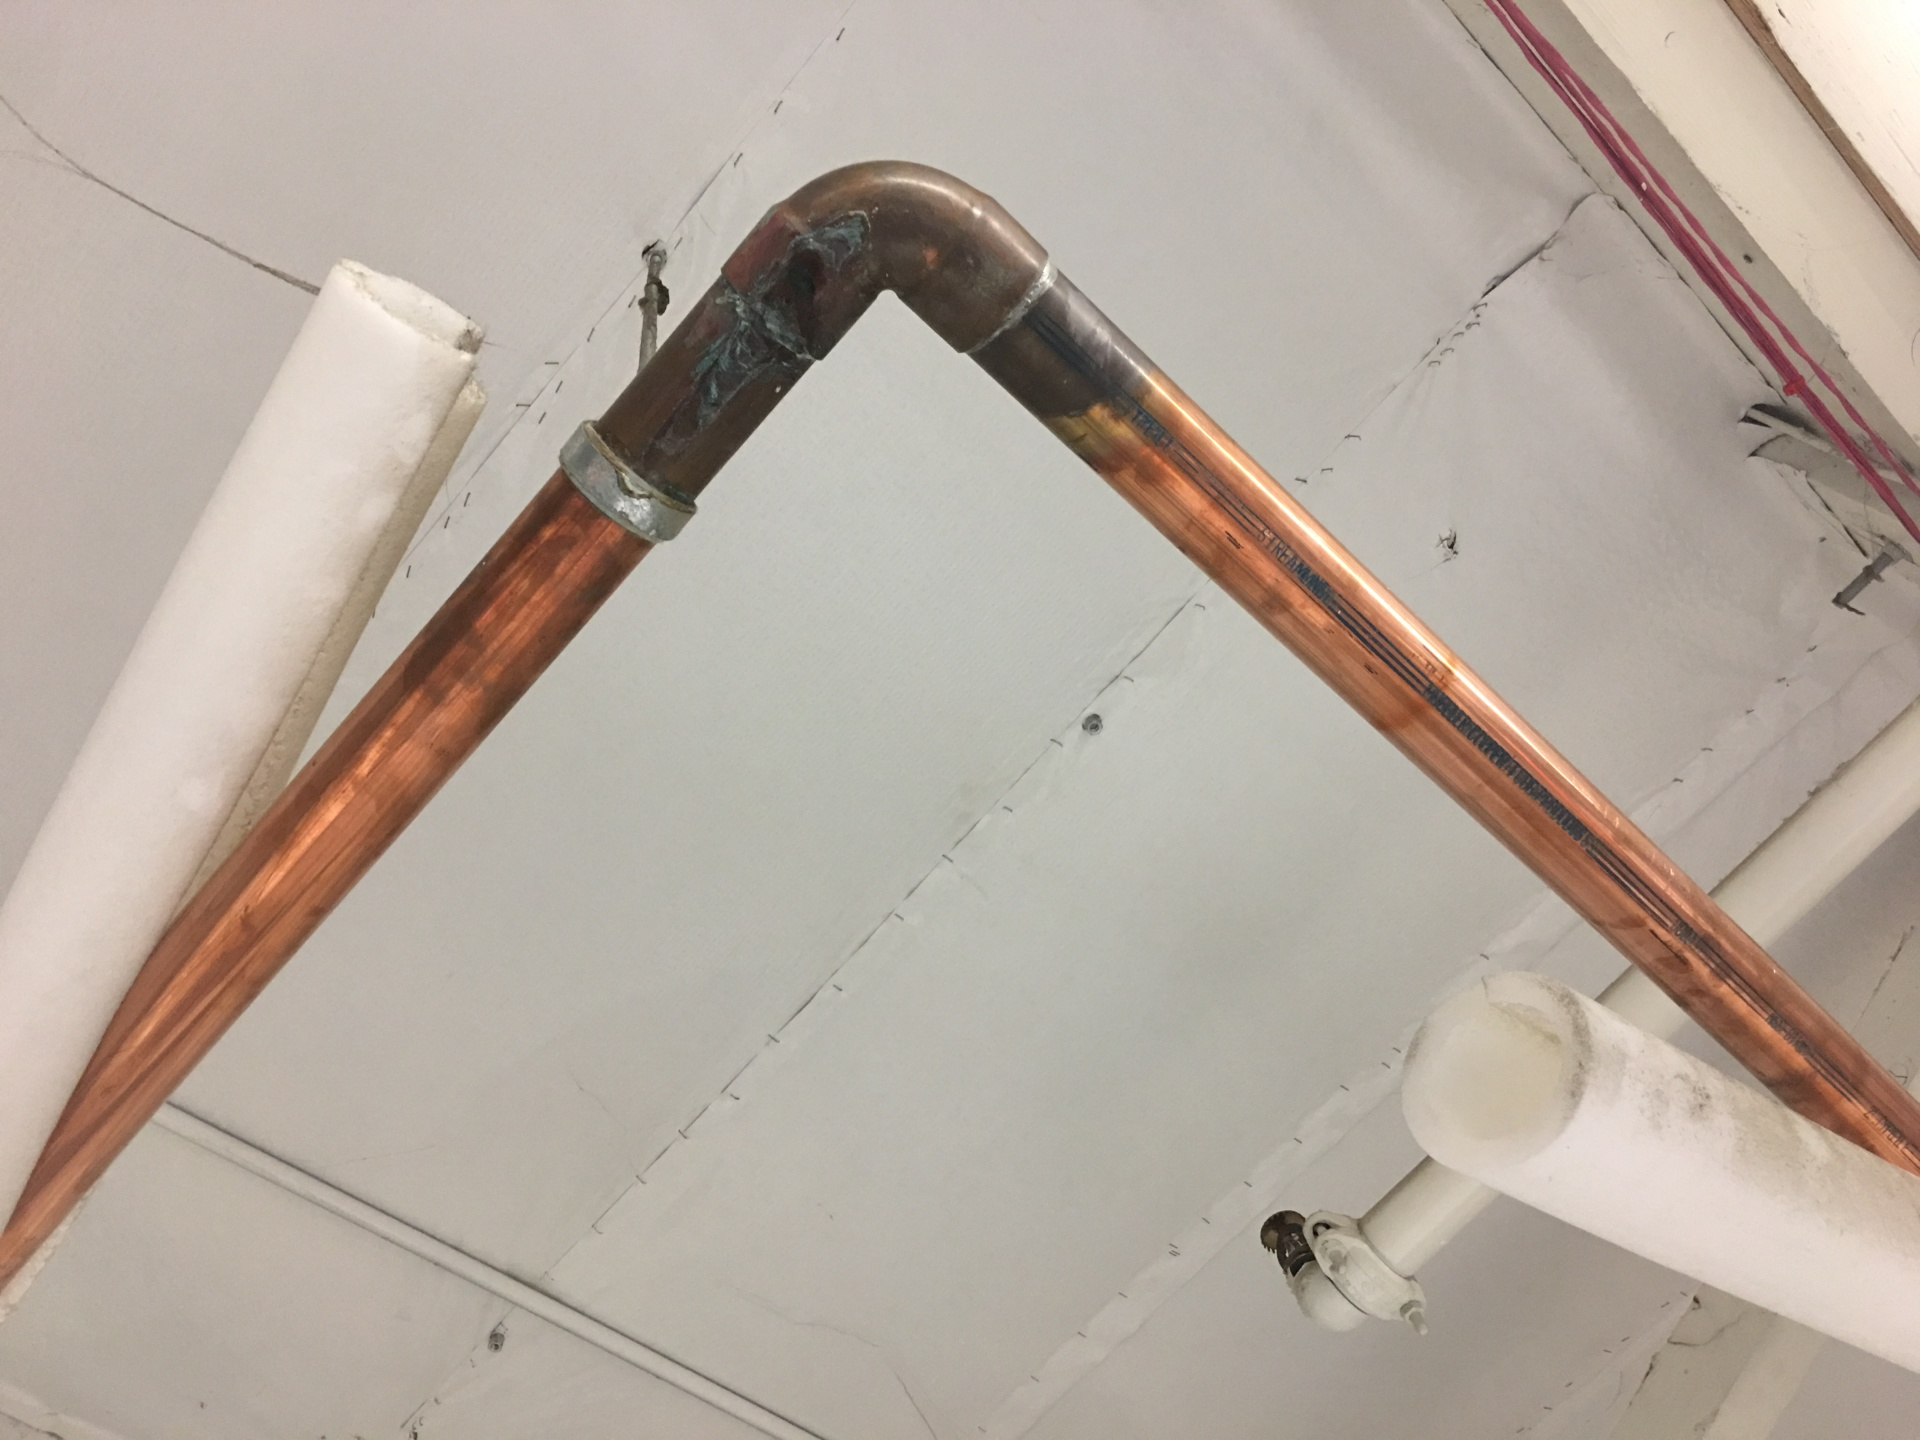 Damaged Copper Water Line